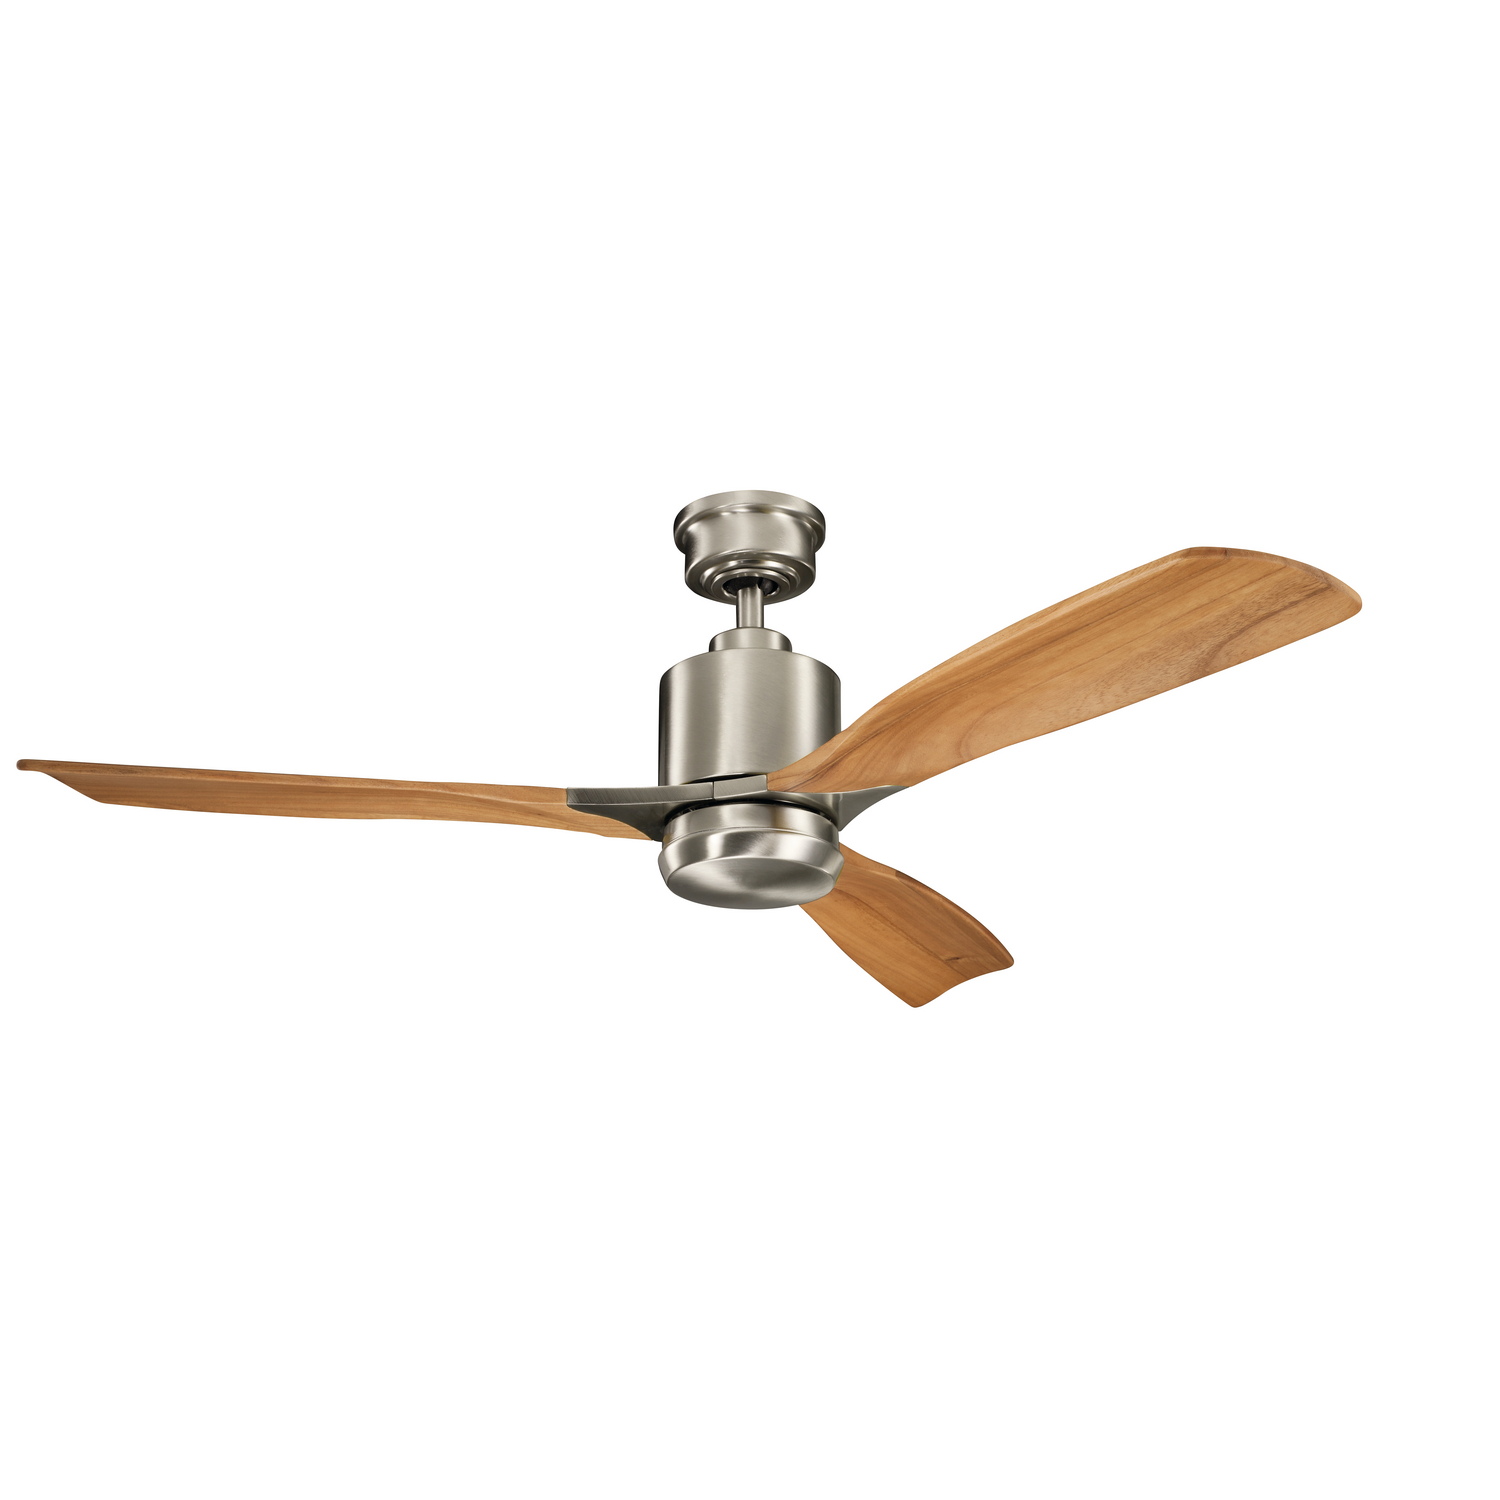 52 inchCeiling Fan from the Ridley II collection by Kichler 300027BSS